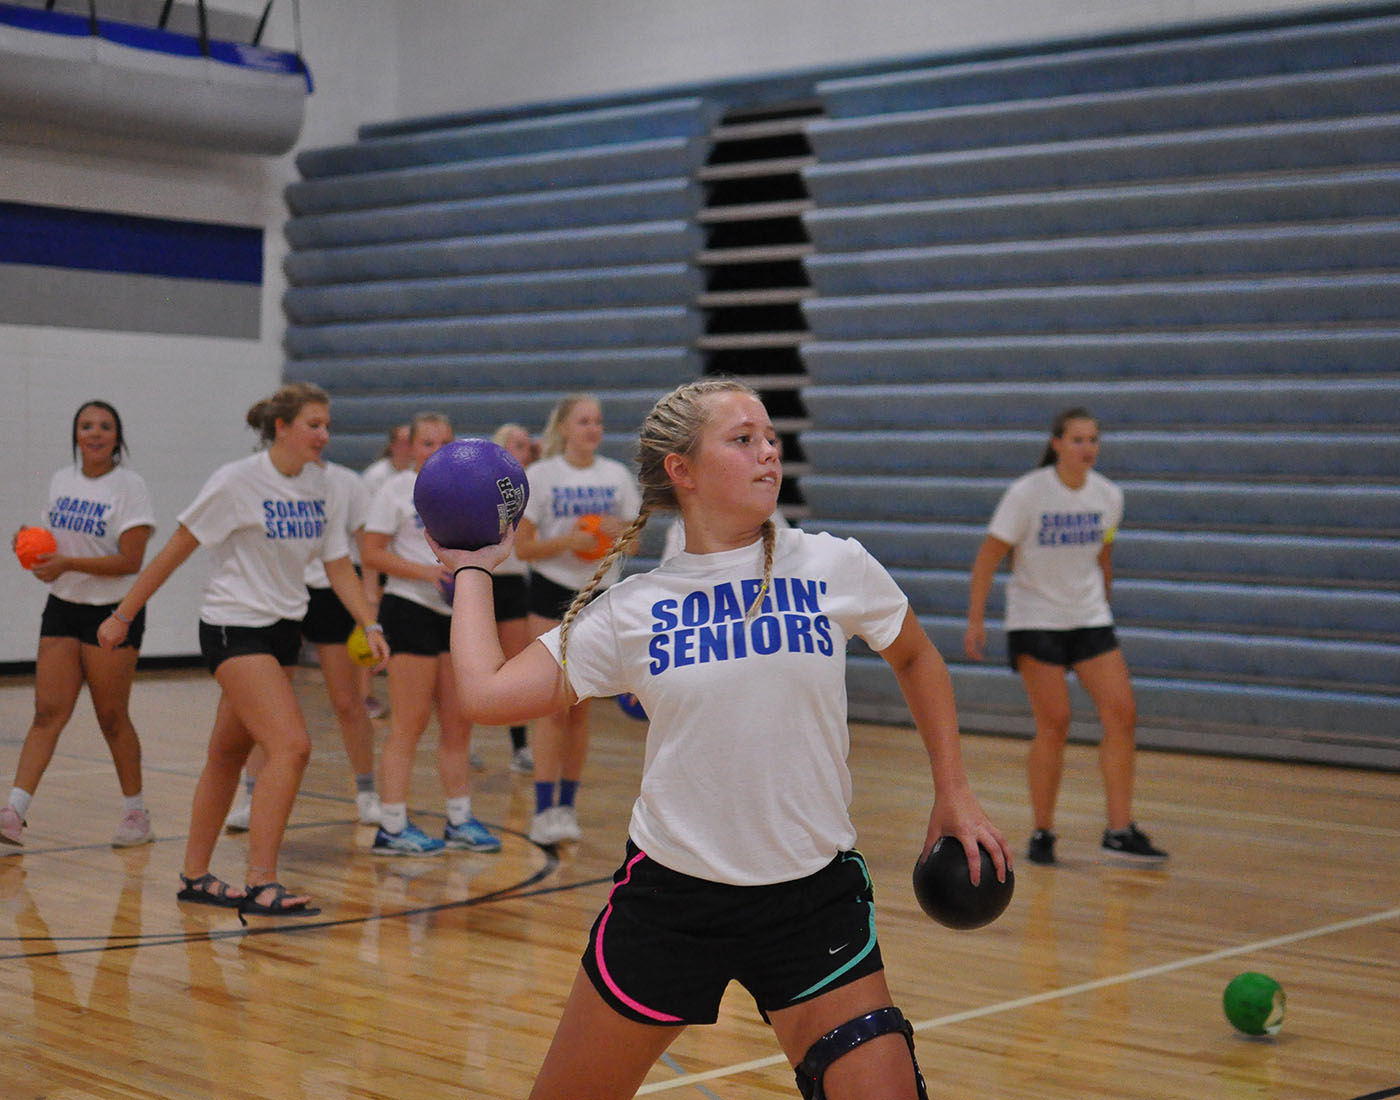 Senior+Cassondra+Bremer+loads+her+arm+back+for+a+throw+at+the+opposing+team